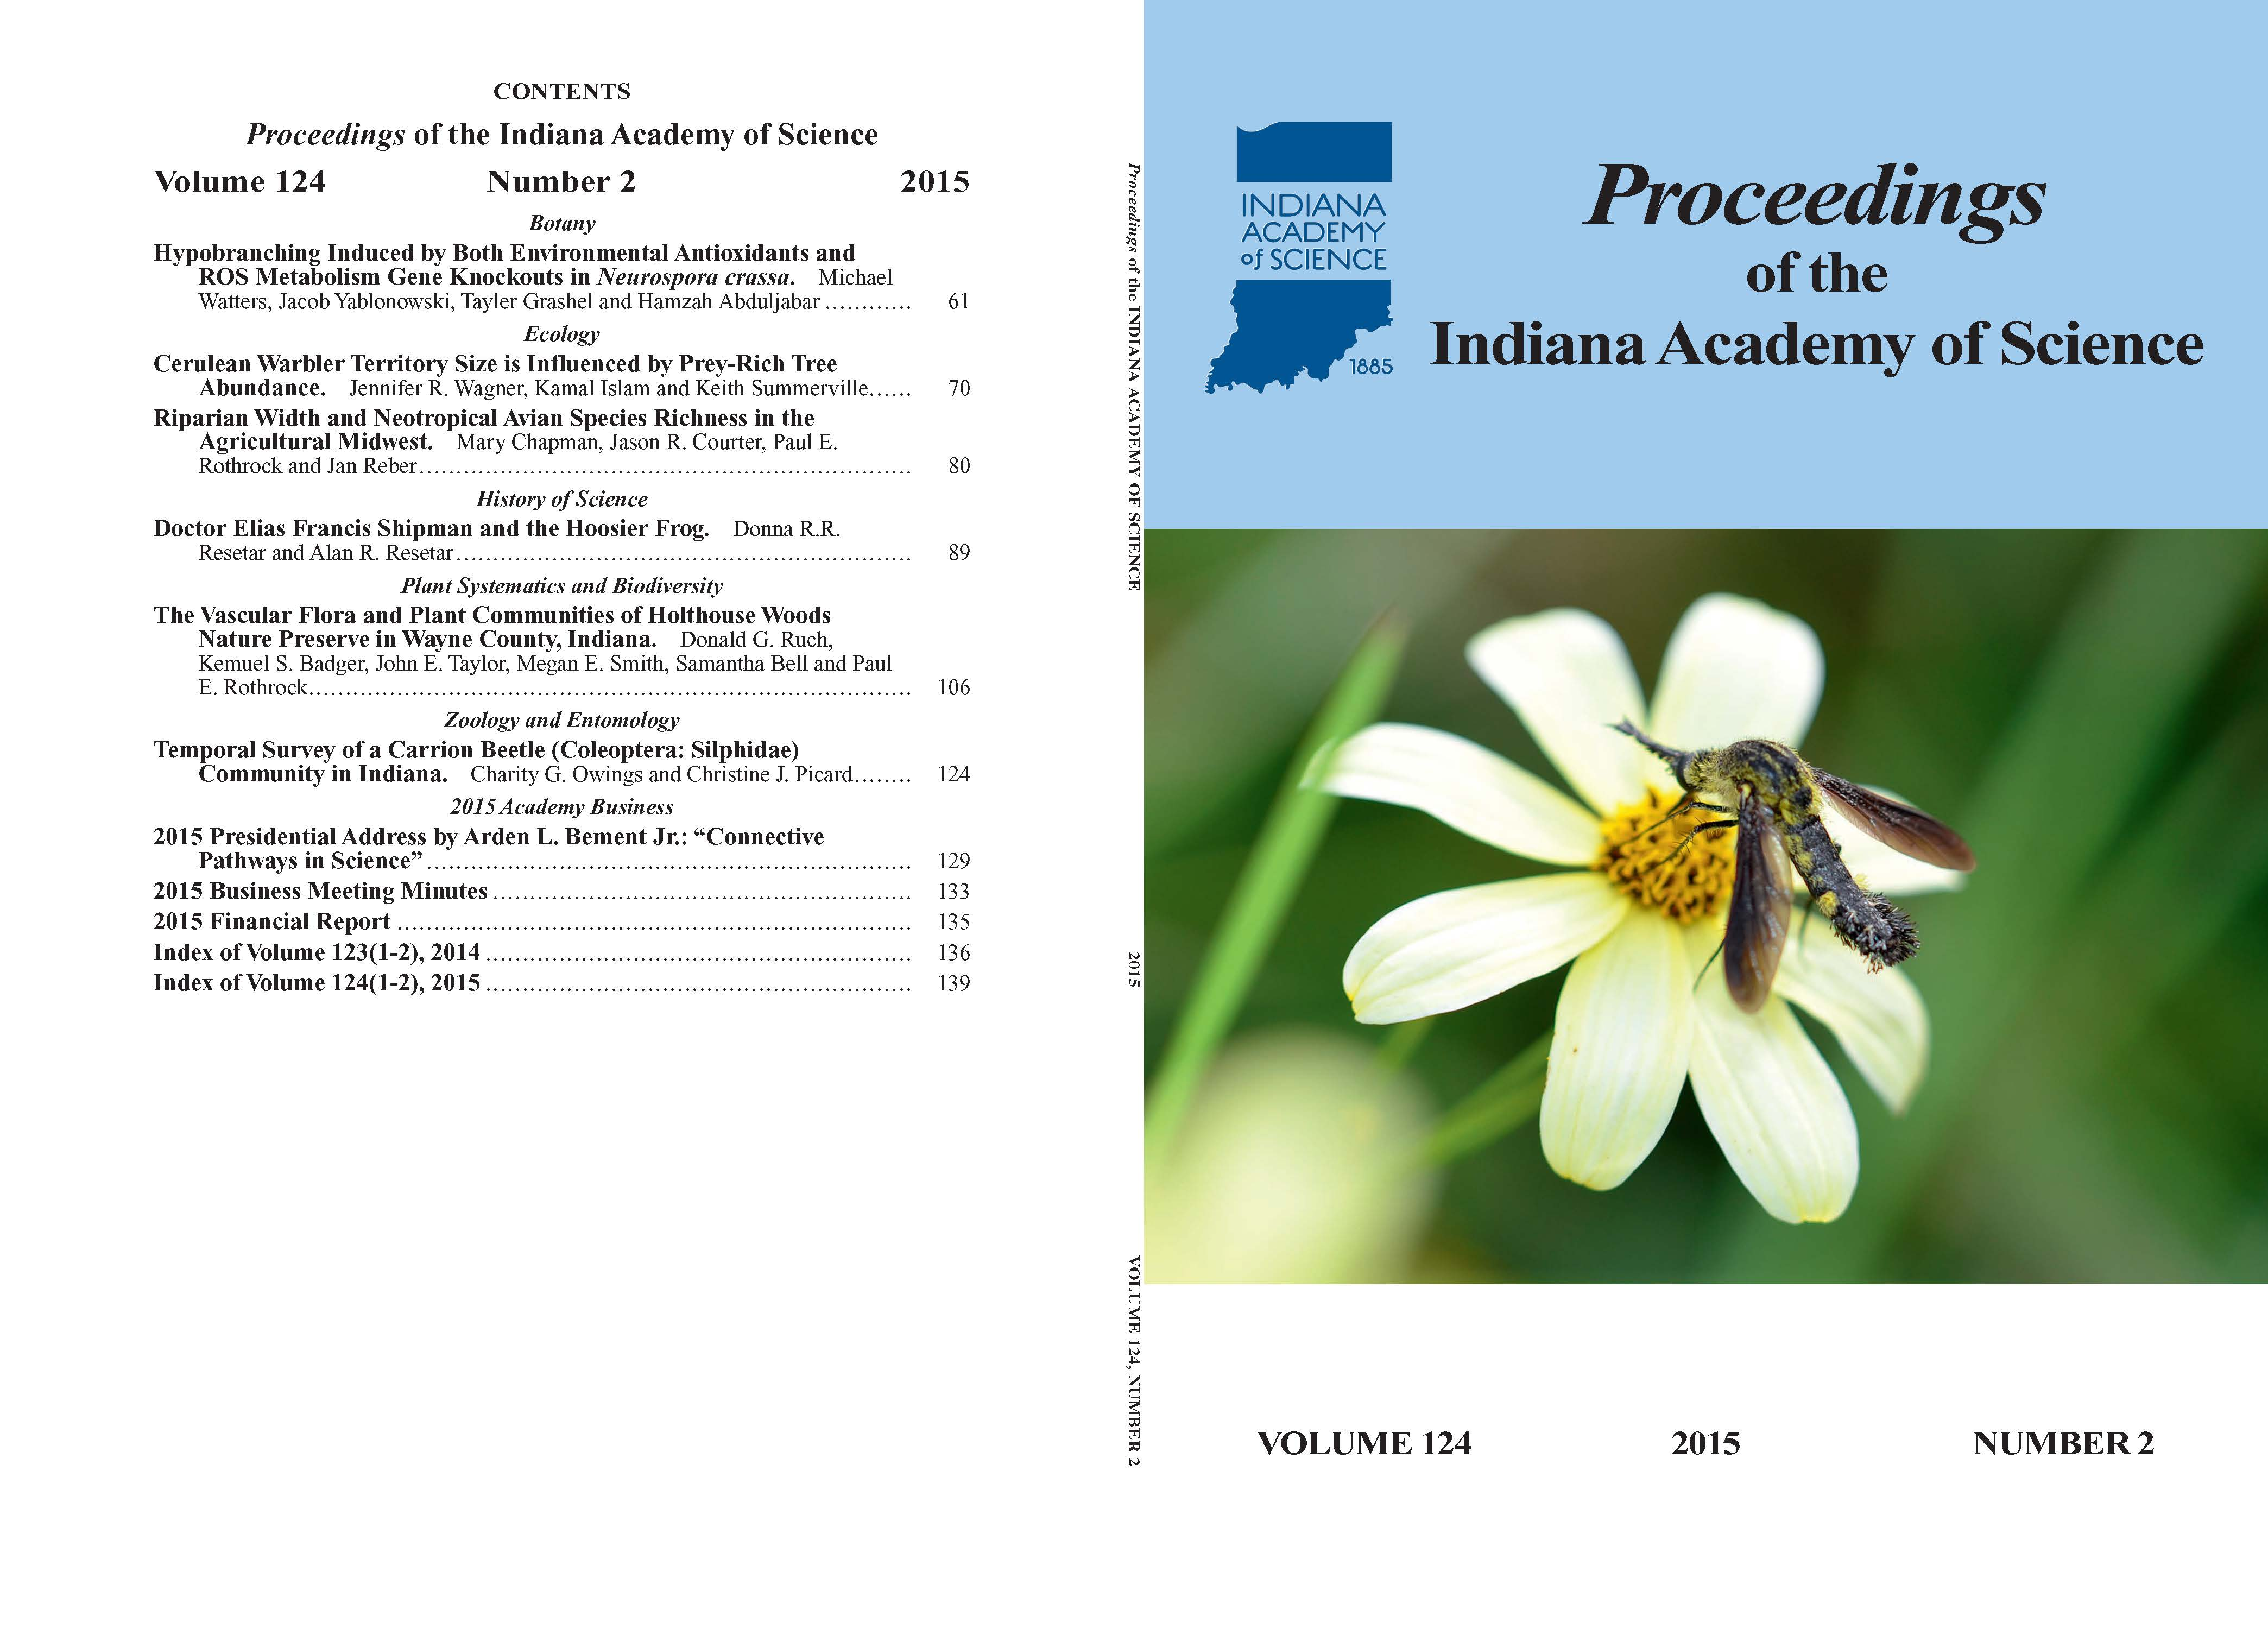 Proceedings of the Indiana Academy of Science 124:2 2015